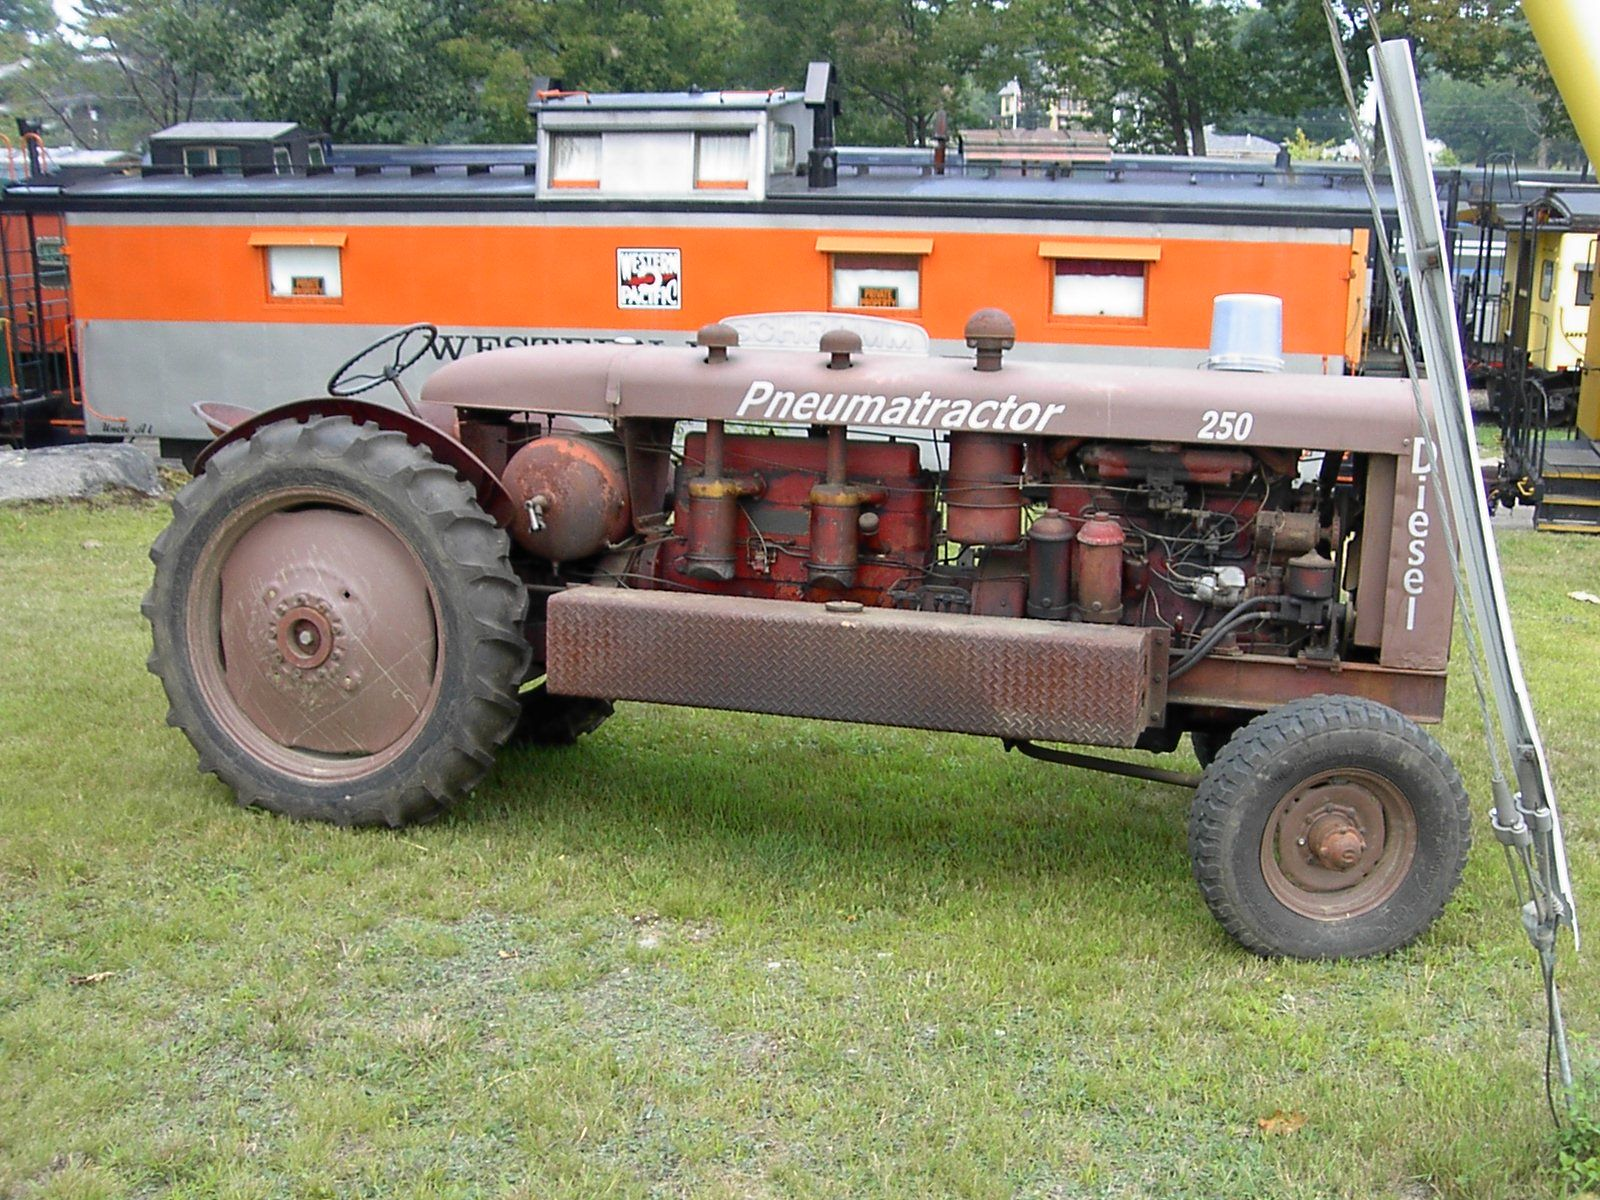 84299d1188180687 What Can Tell Me About Tractor Pics 004